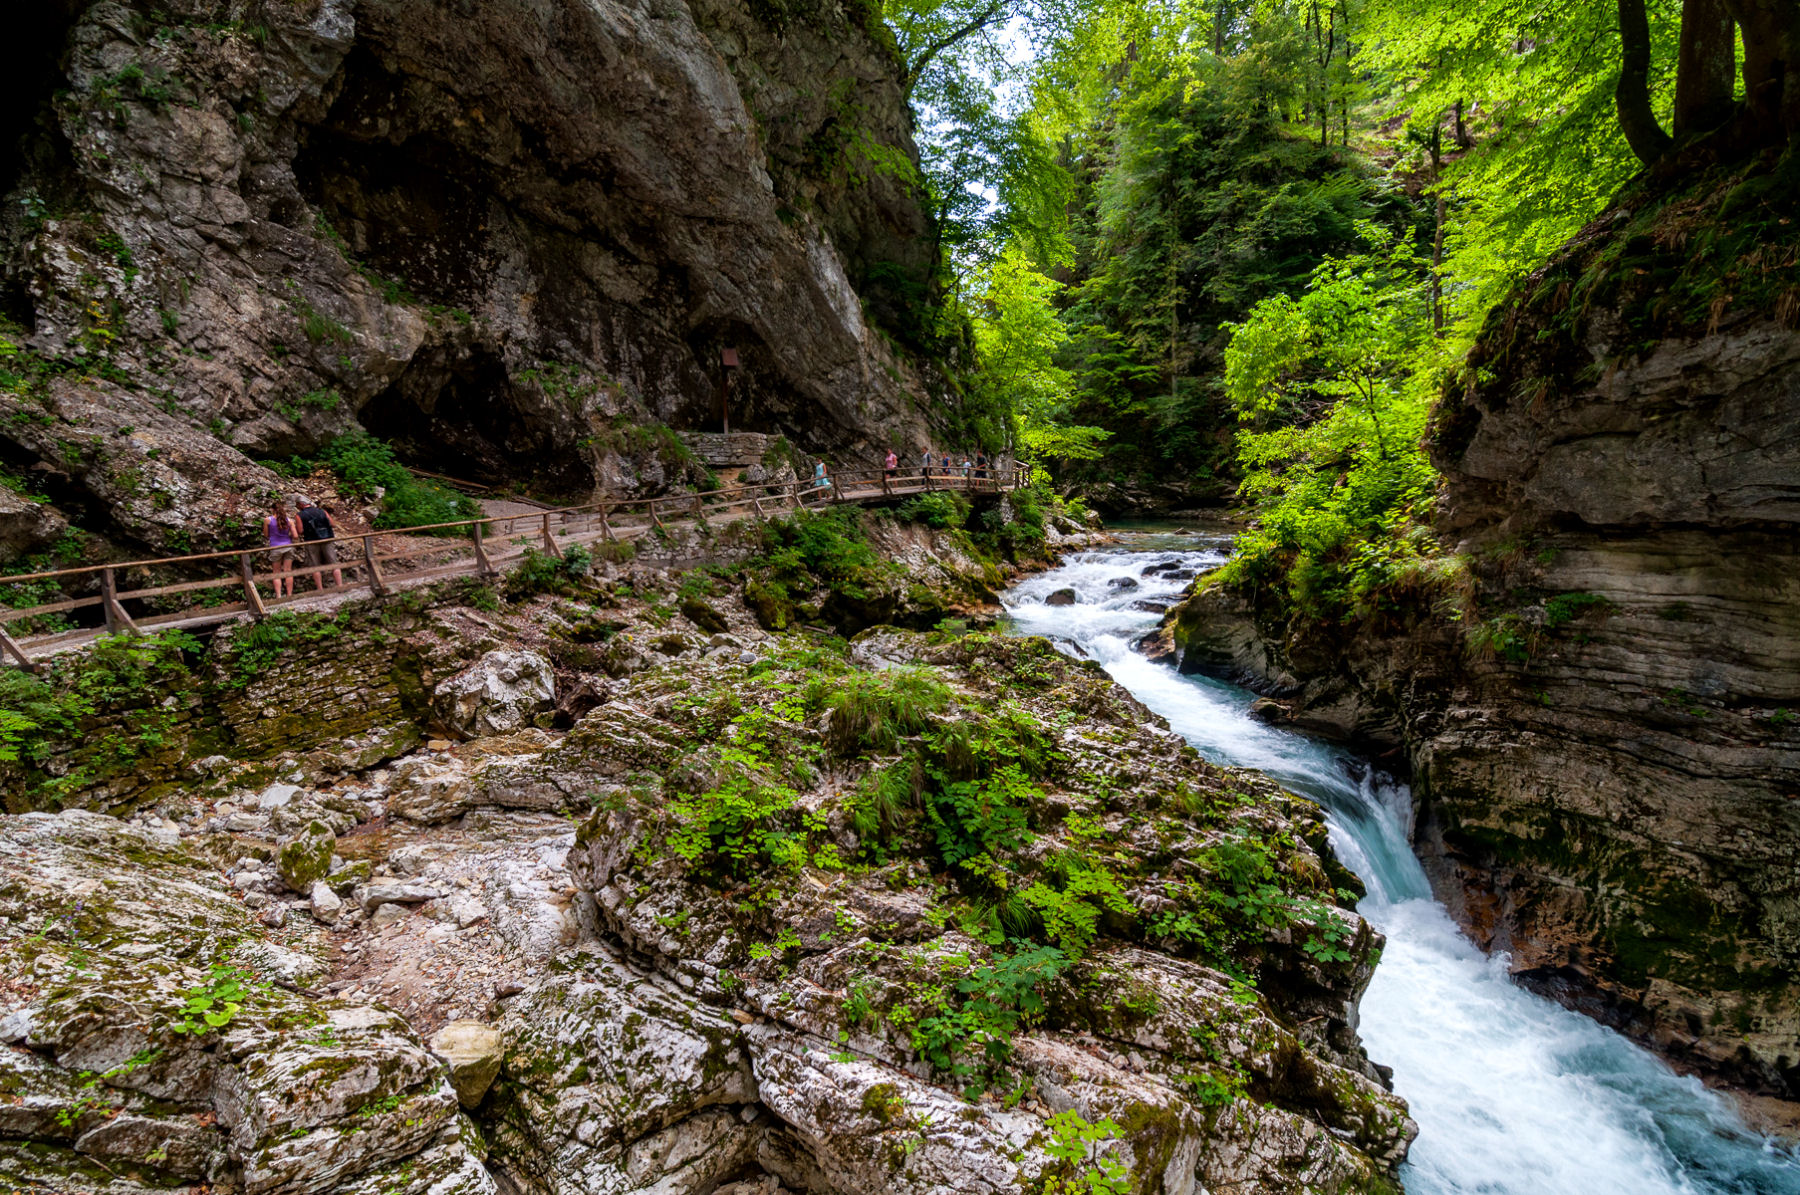 Beautiful views of the cascading water along with rock formations in Vintgar Gorge, Slovenia